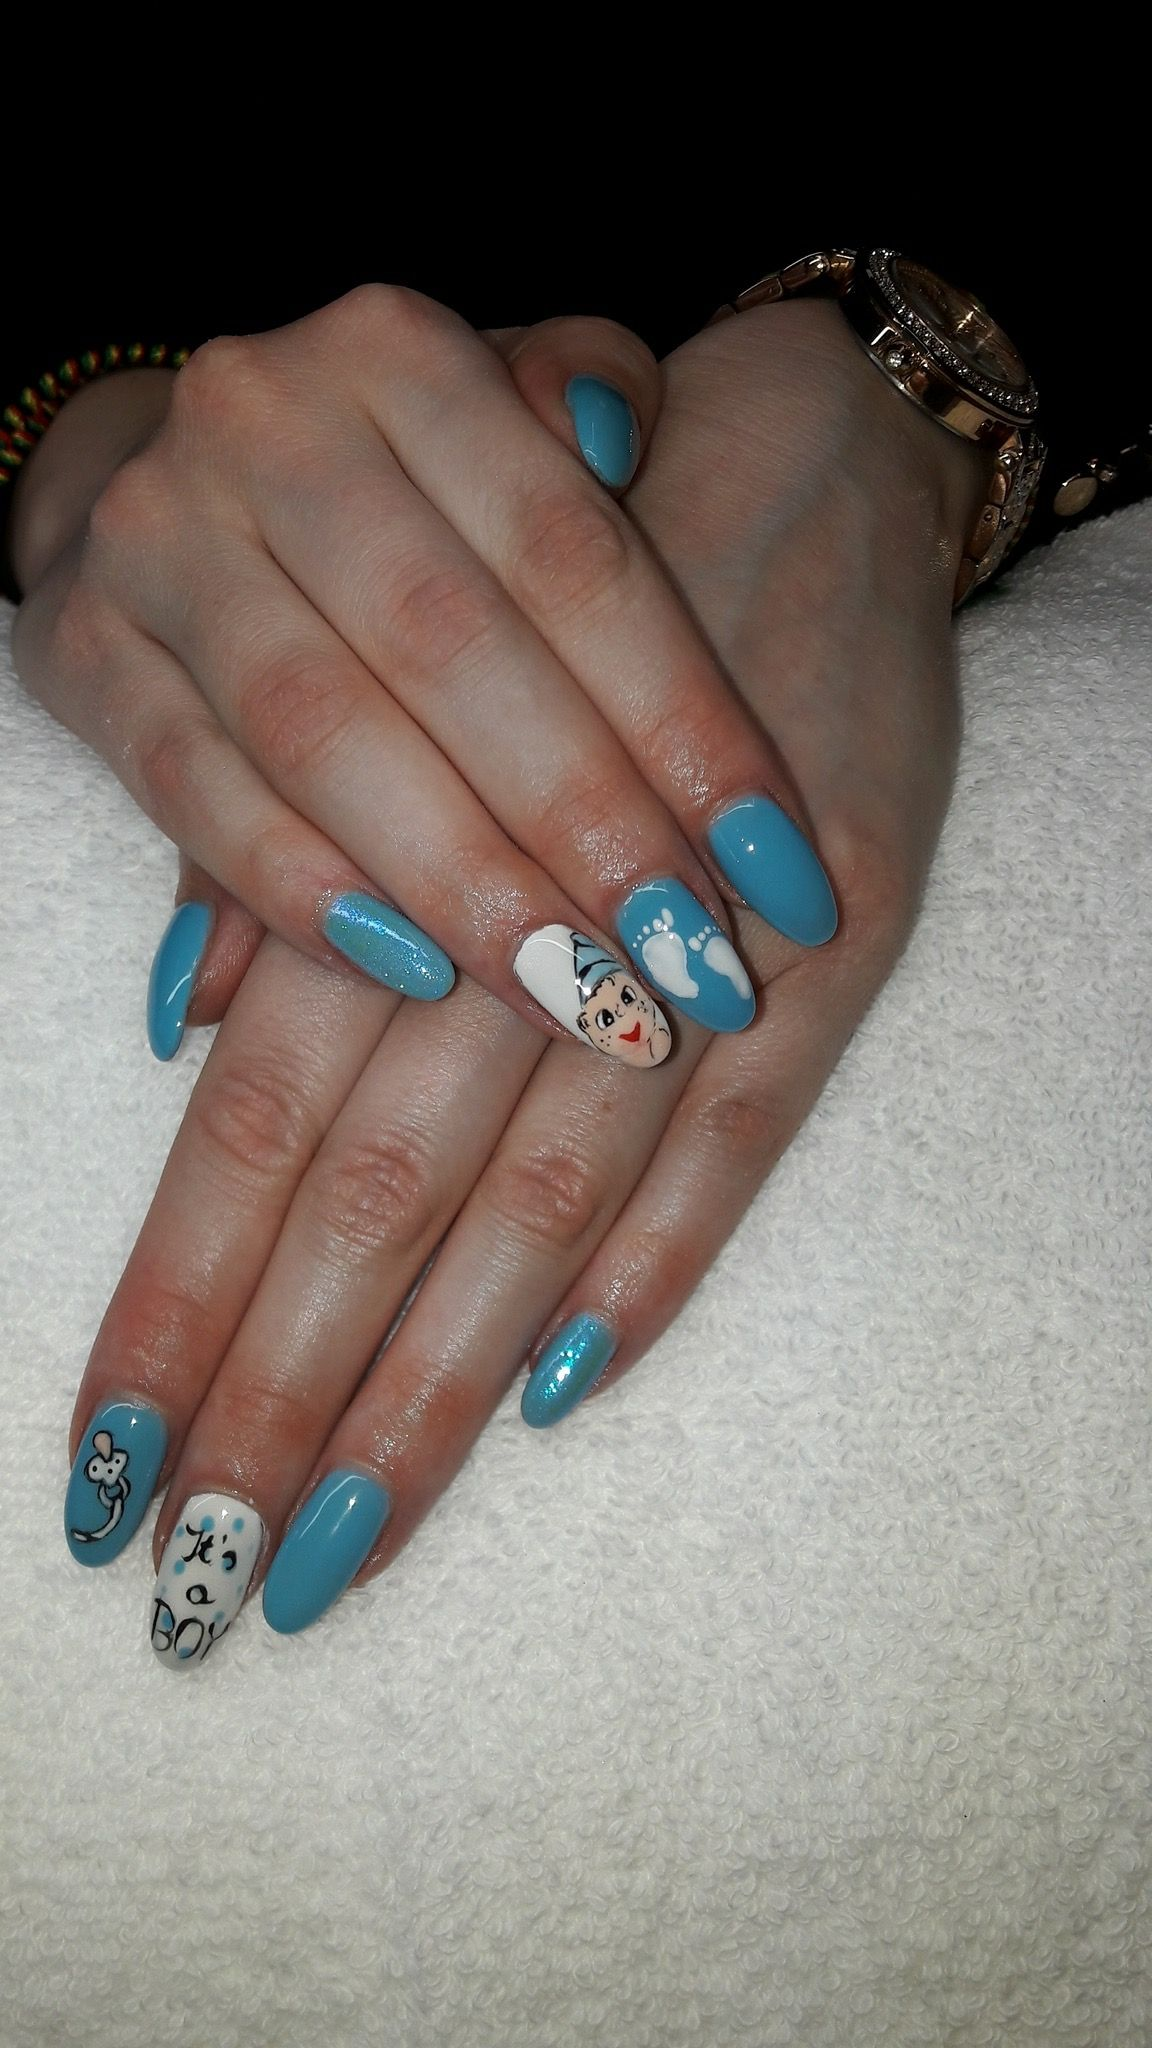 Baby Shower Nails Its A Boy Baby Boy Nail Art Babyface Blue Krm